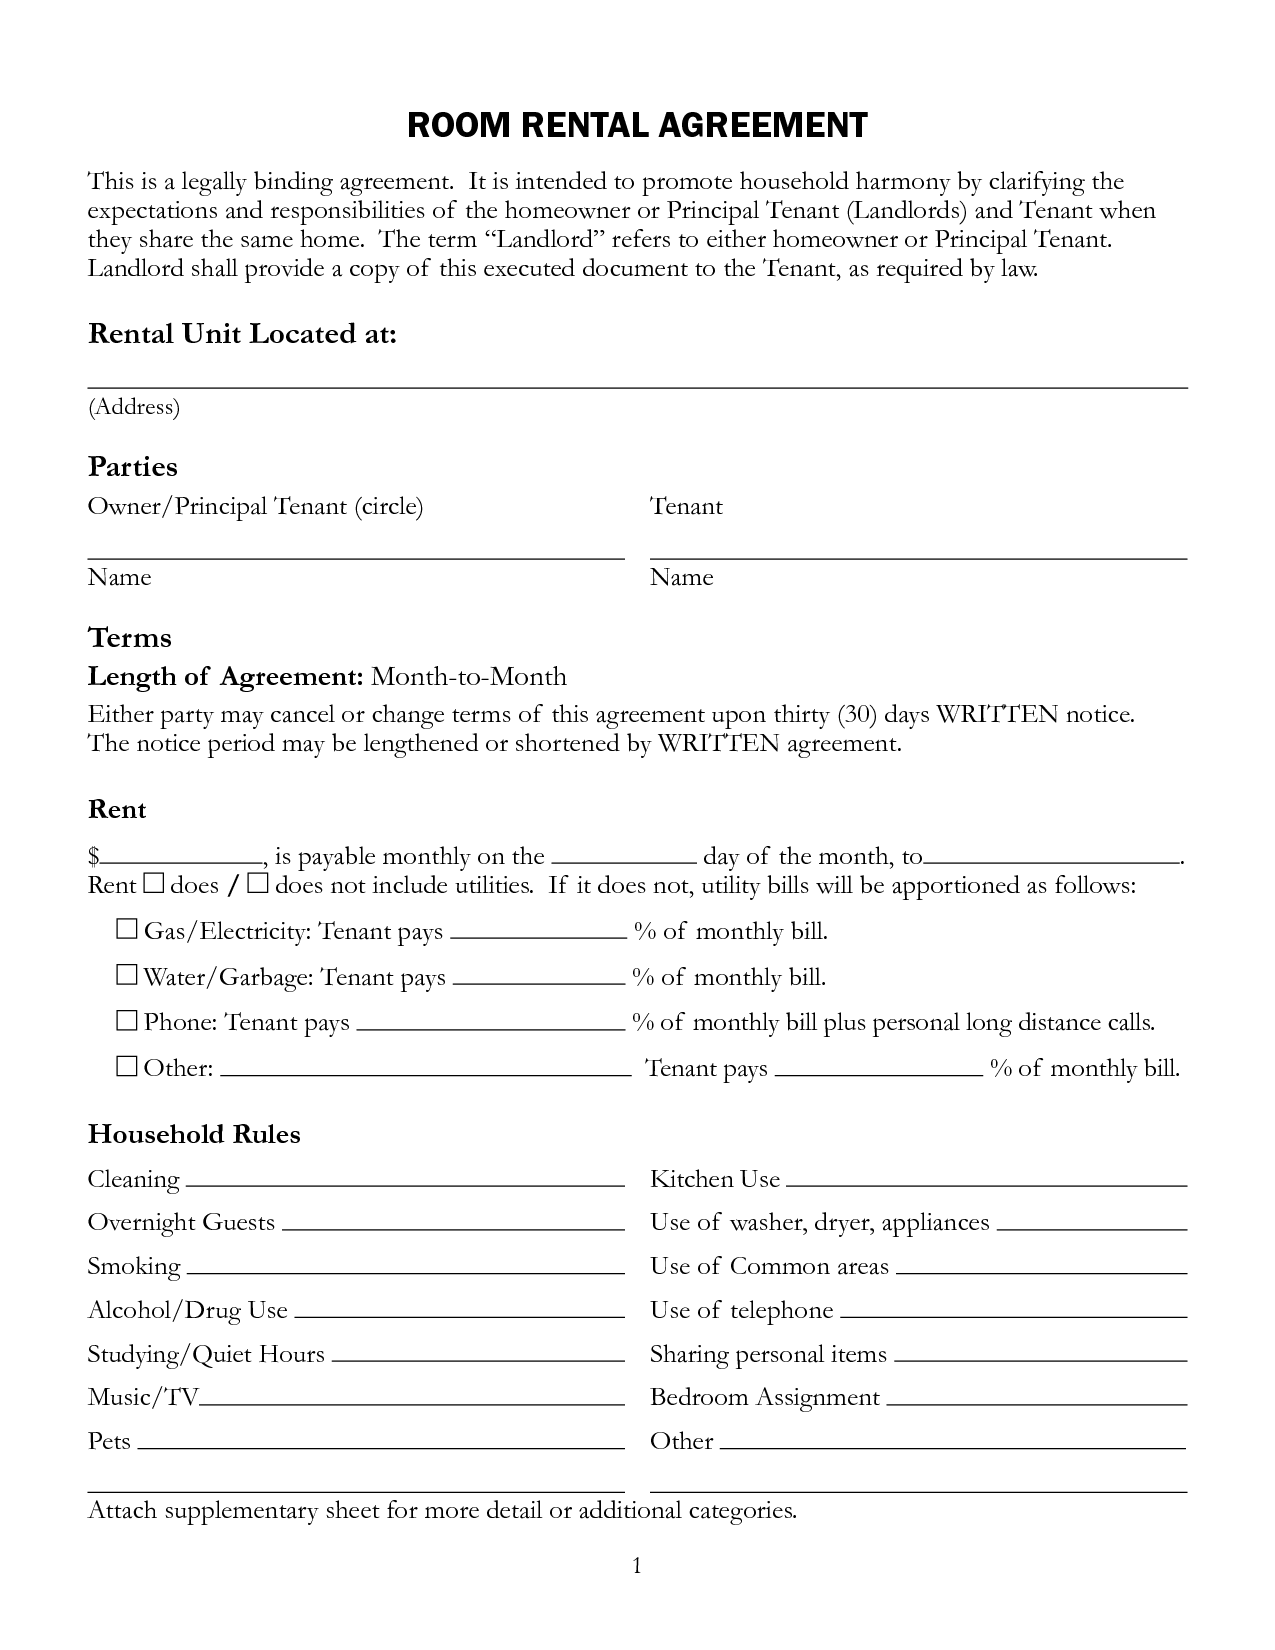 Printable Room Rental Lease Agreement Template